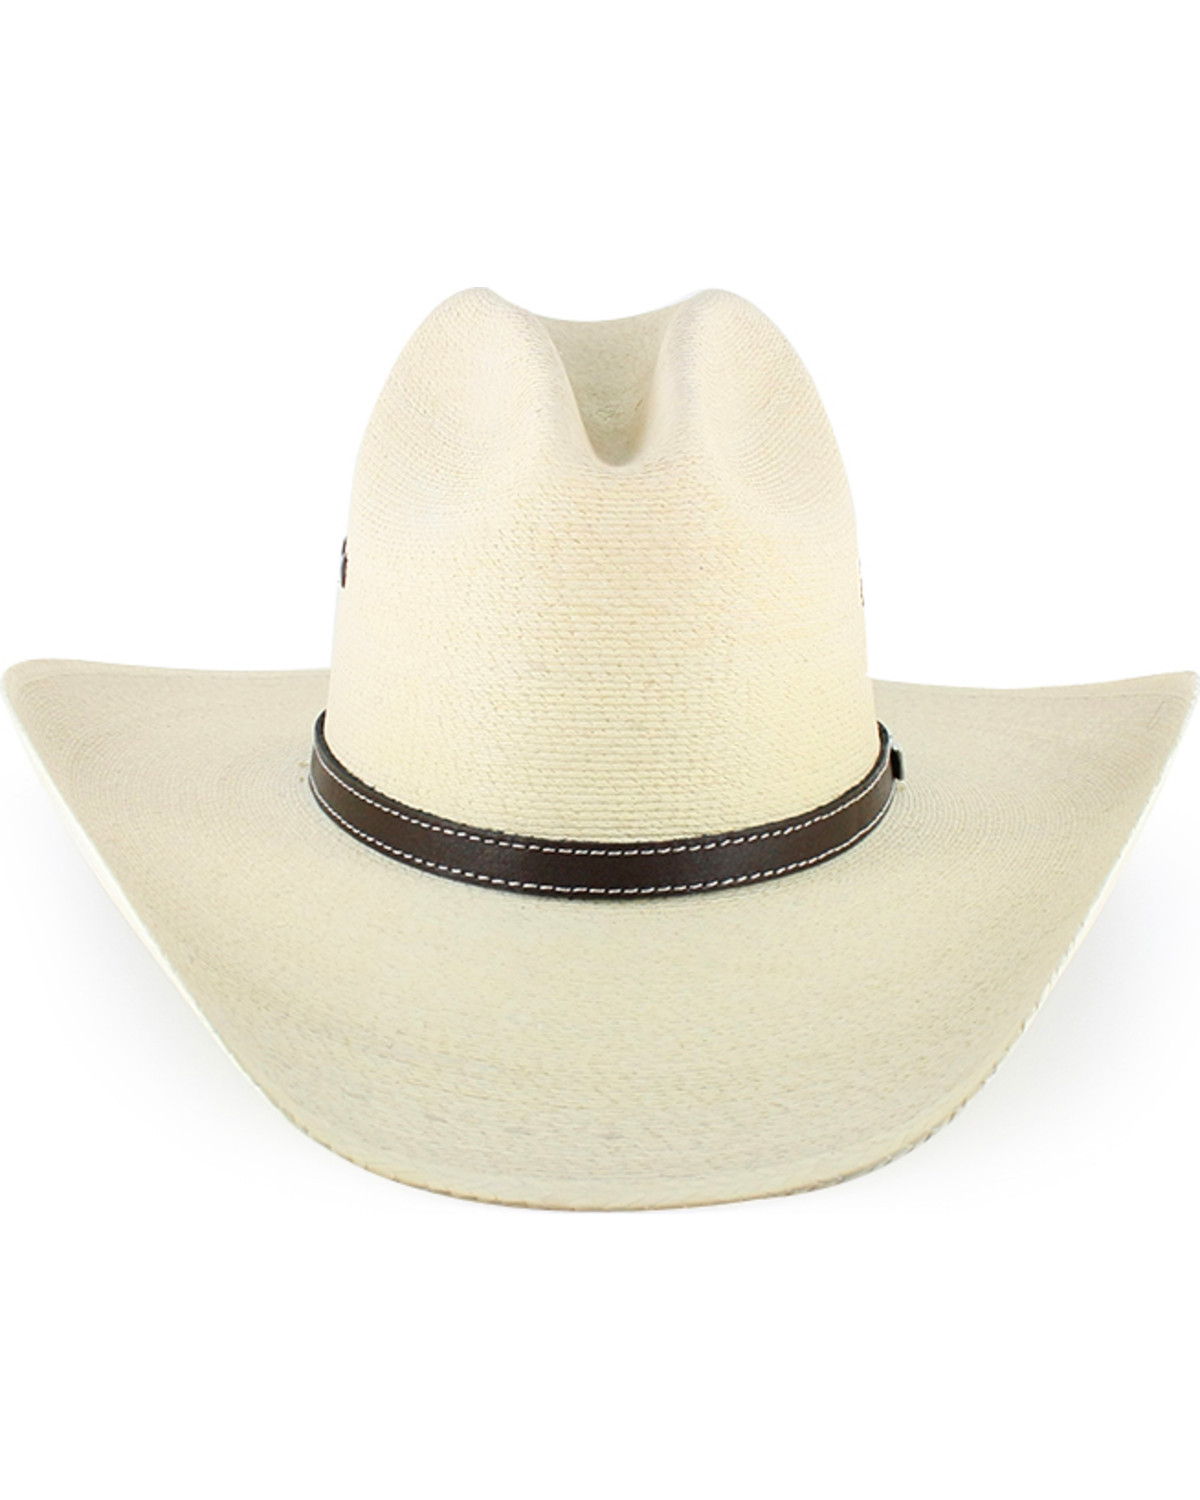 Atwood Men s Gus 7X Palm Leaf Straw Cowboy Hat - Country Outfitter e67f501a71c